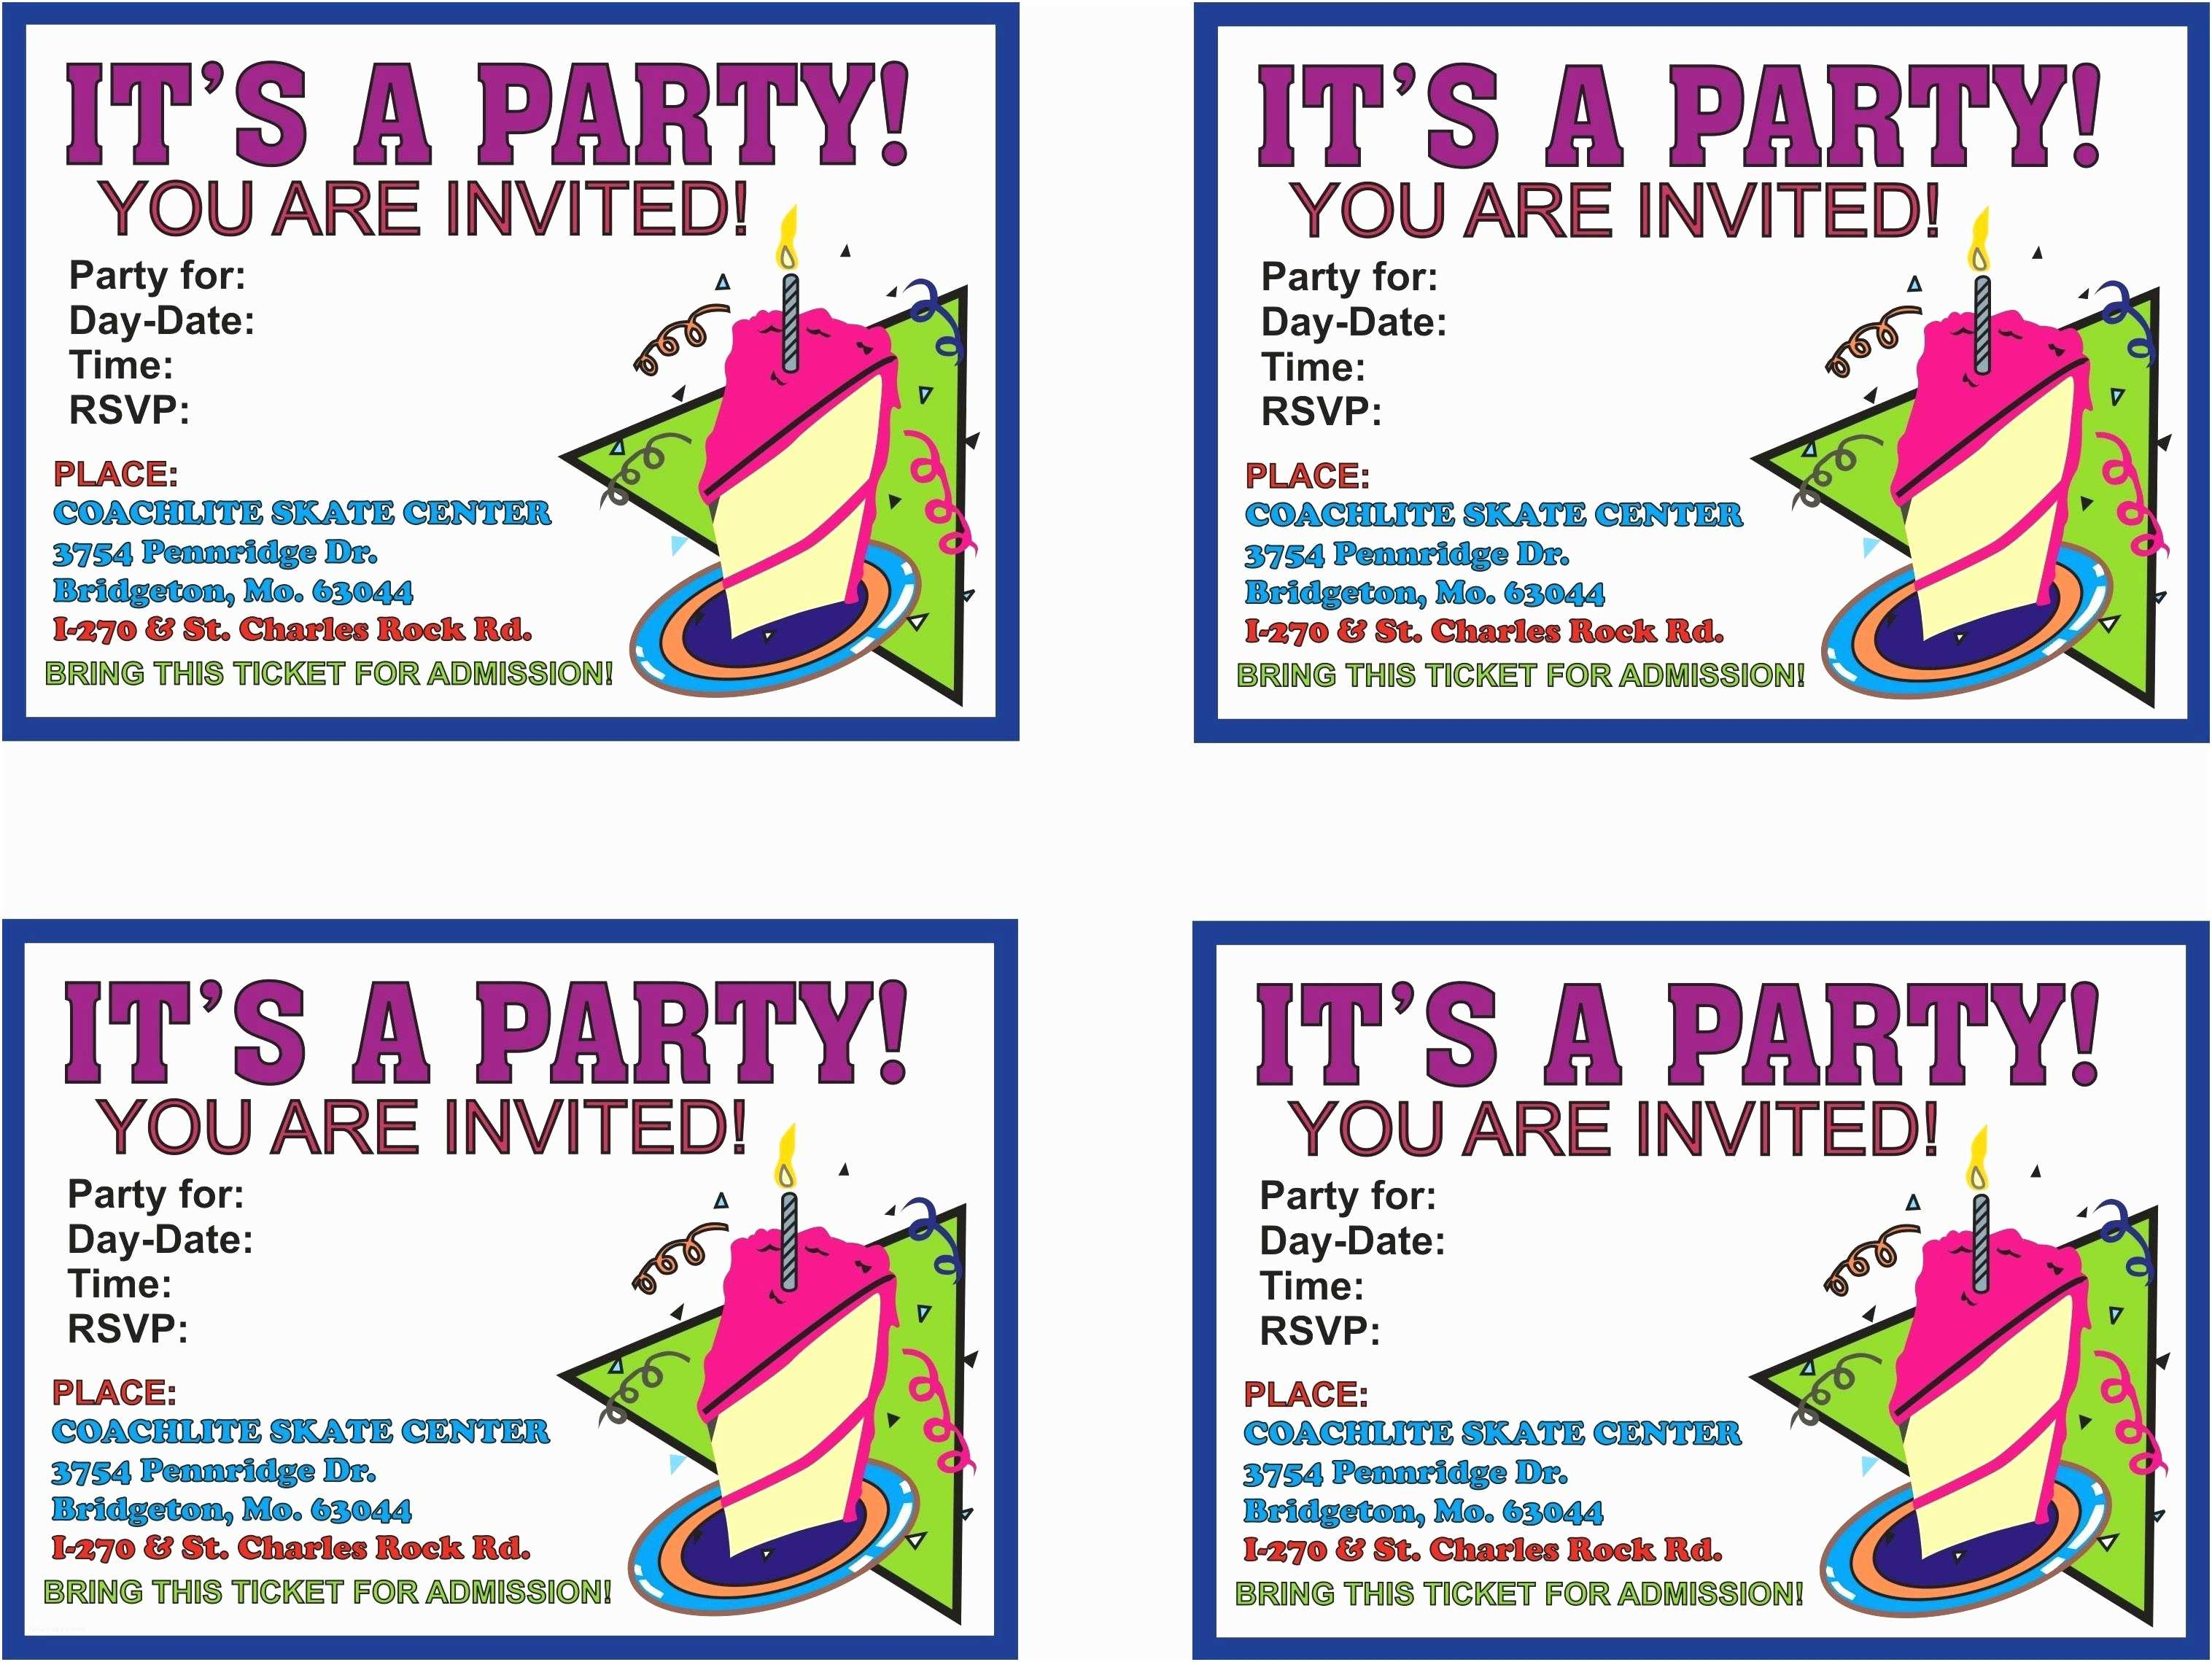 Farewell Party Invitation Wording for the Office Fice Farewell Party Invitation Wording Template Party